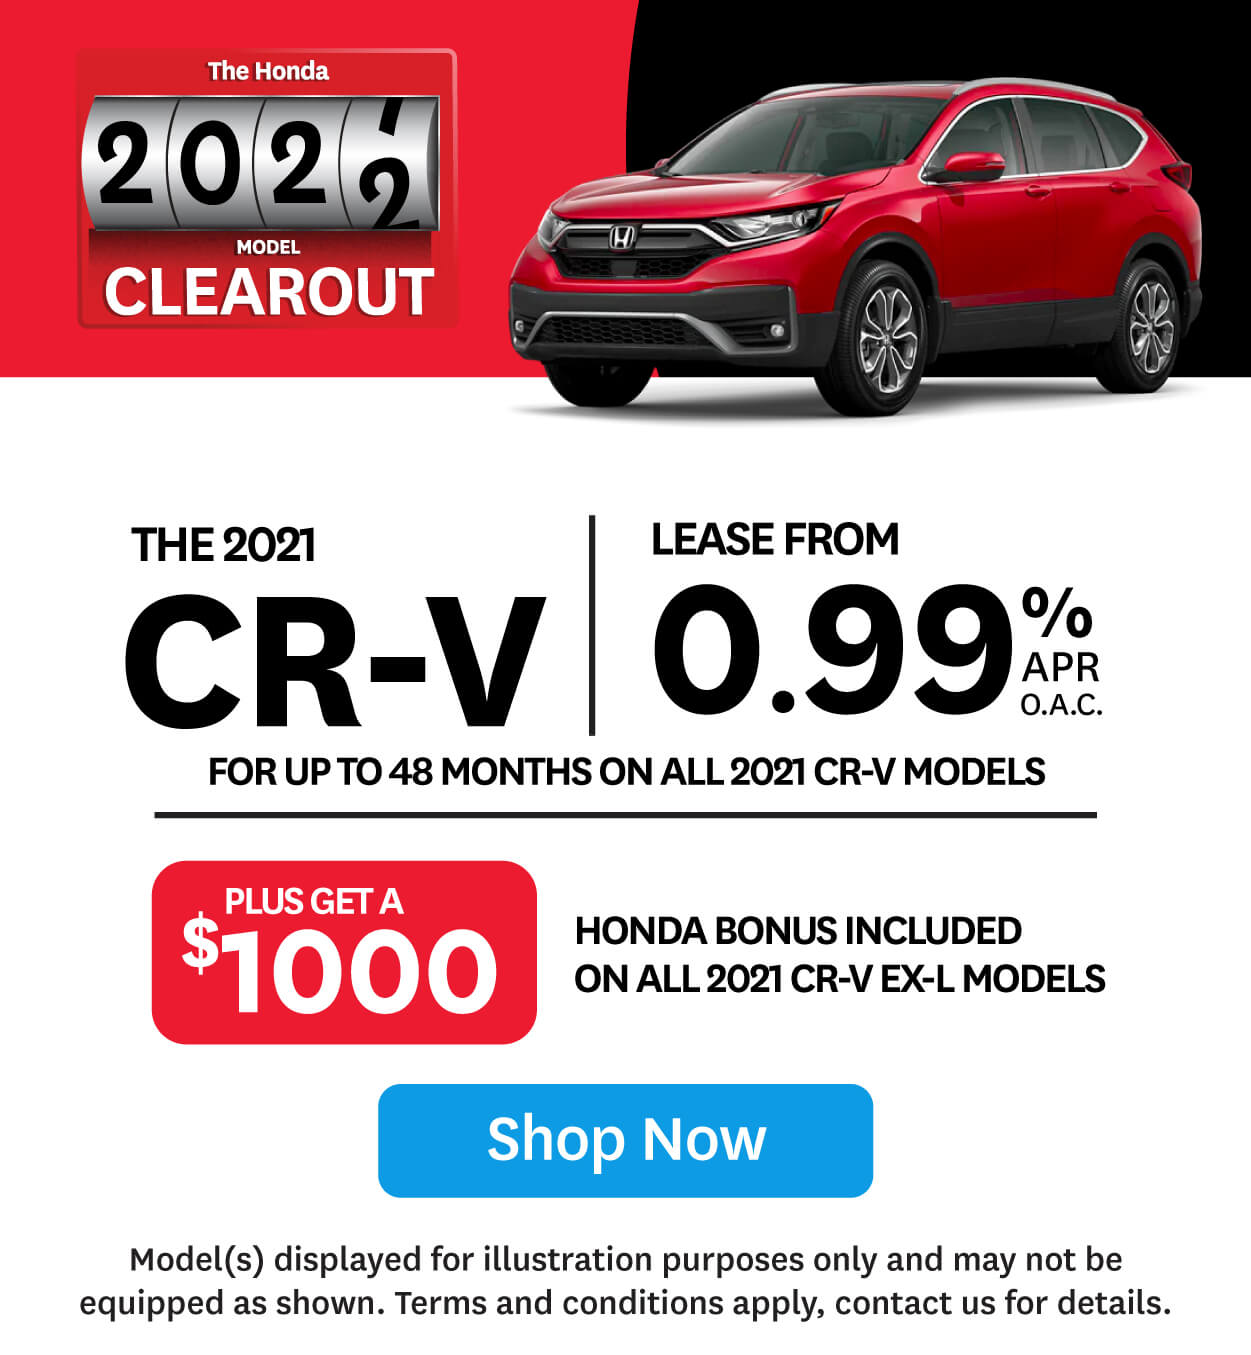 Honda CR-V 2021 Clearout Event at Goderich Honda